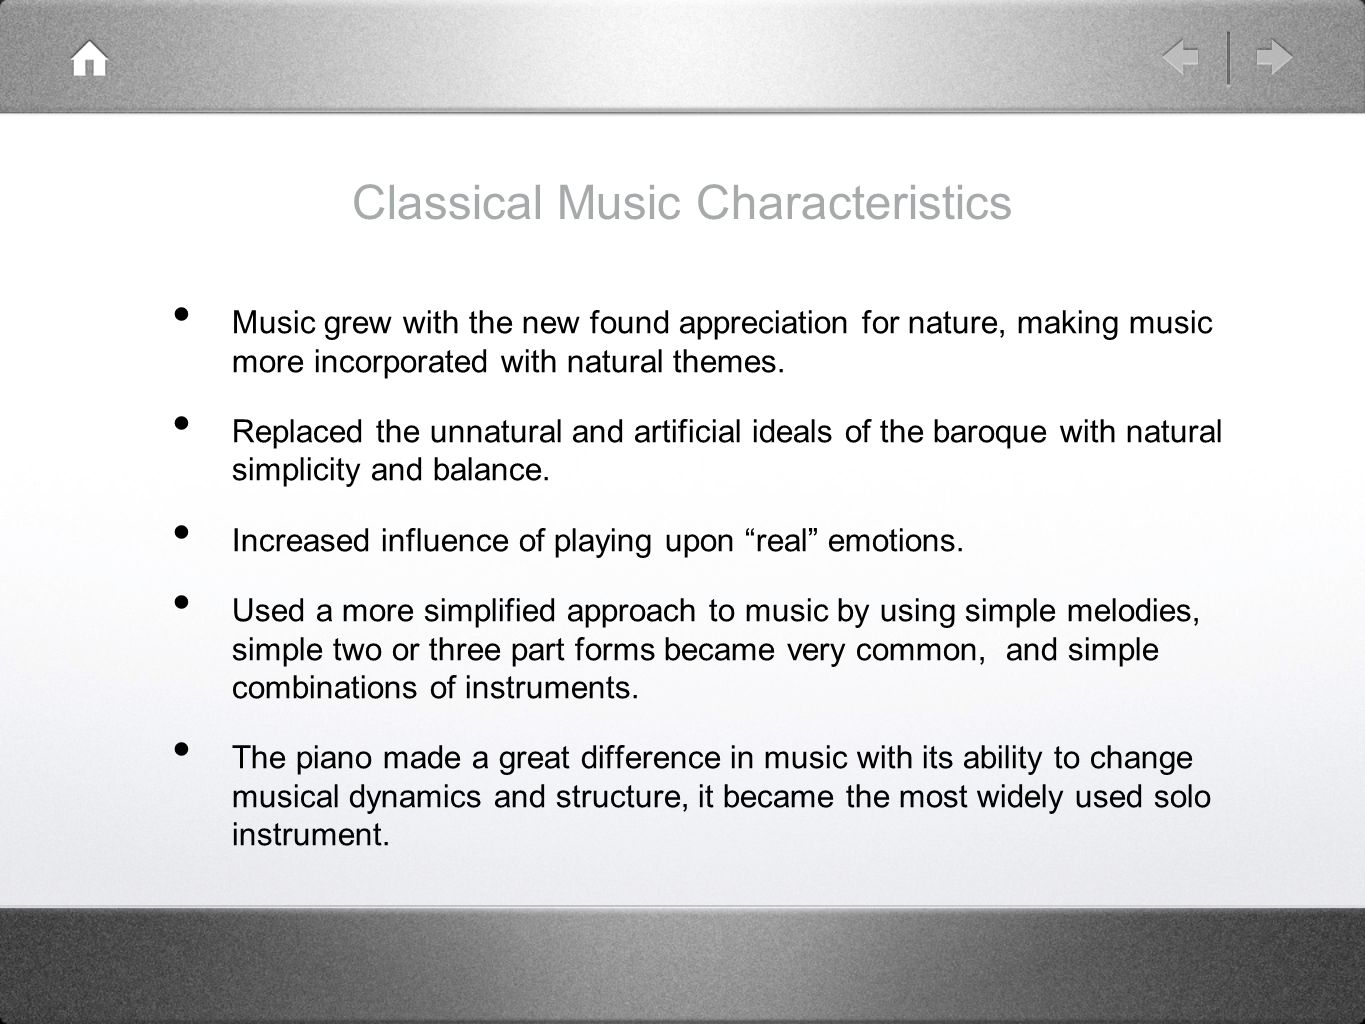 The Differences between Baroque and Classical music